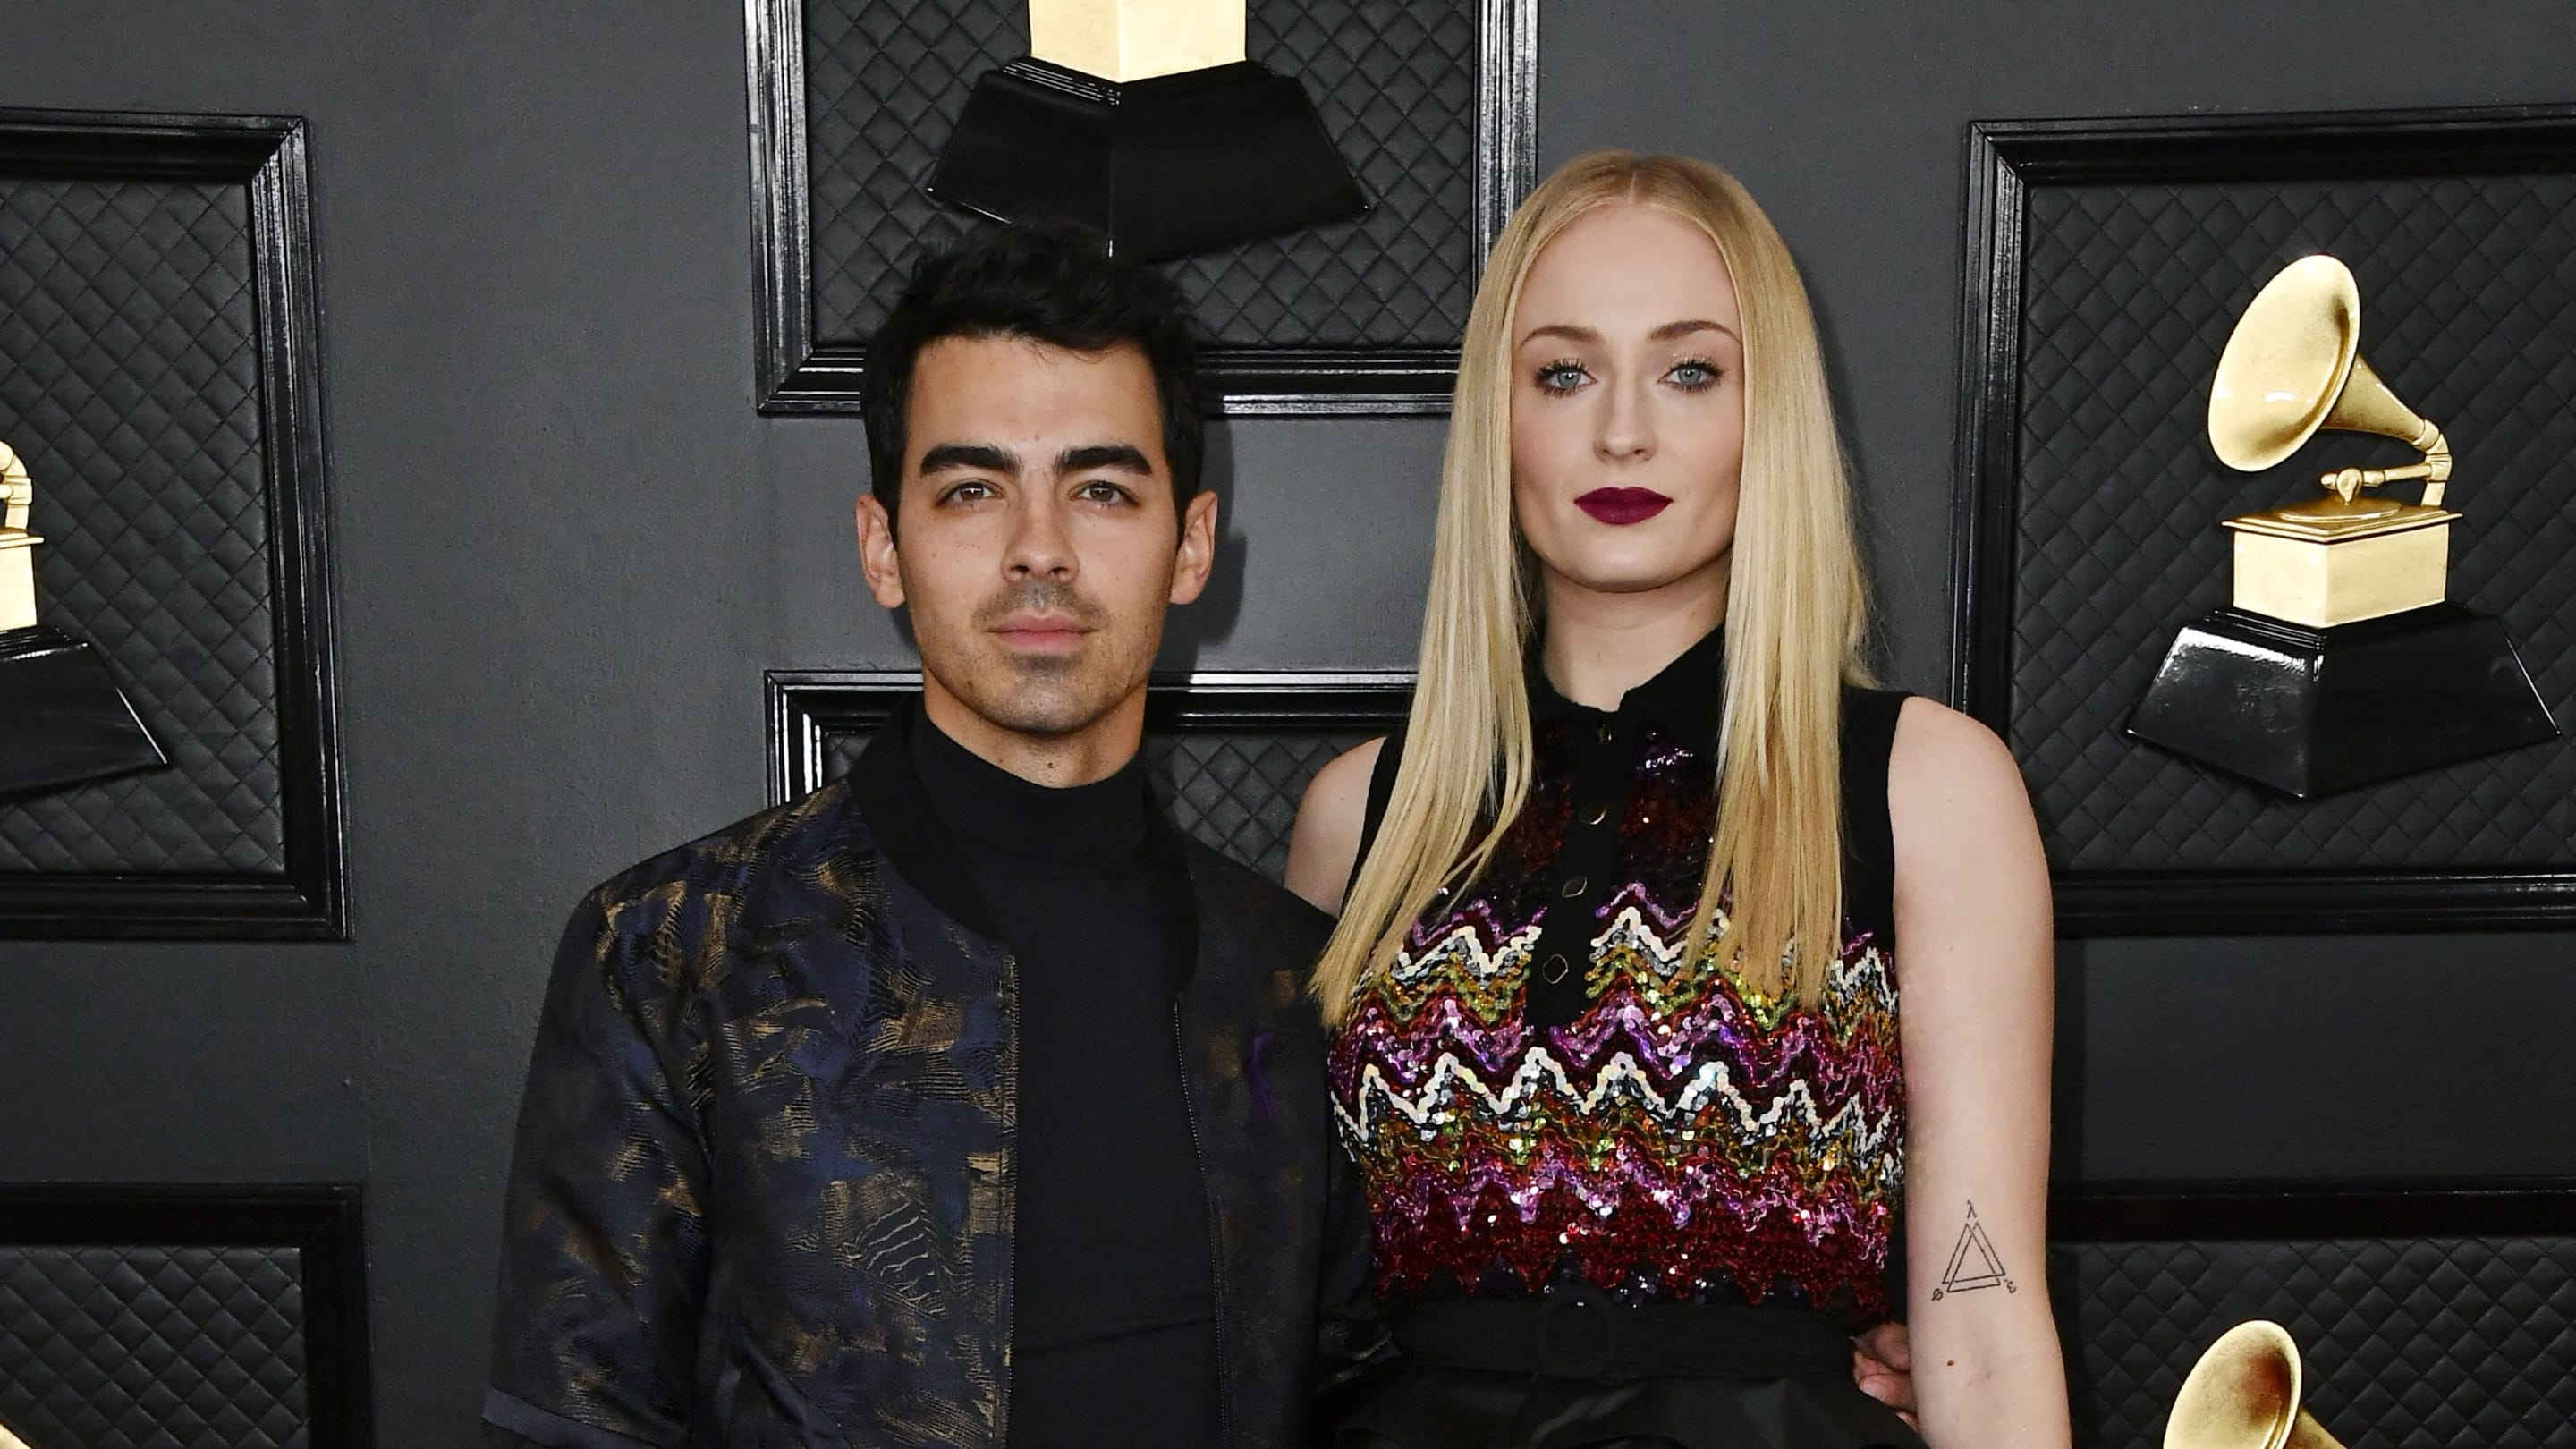 Sophie Turner and Joe Jonas Urge Fans to Wear Masks in First Photo Since Welcoming Baby